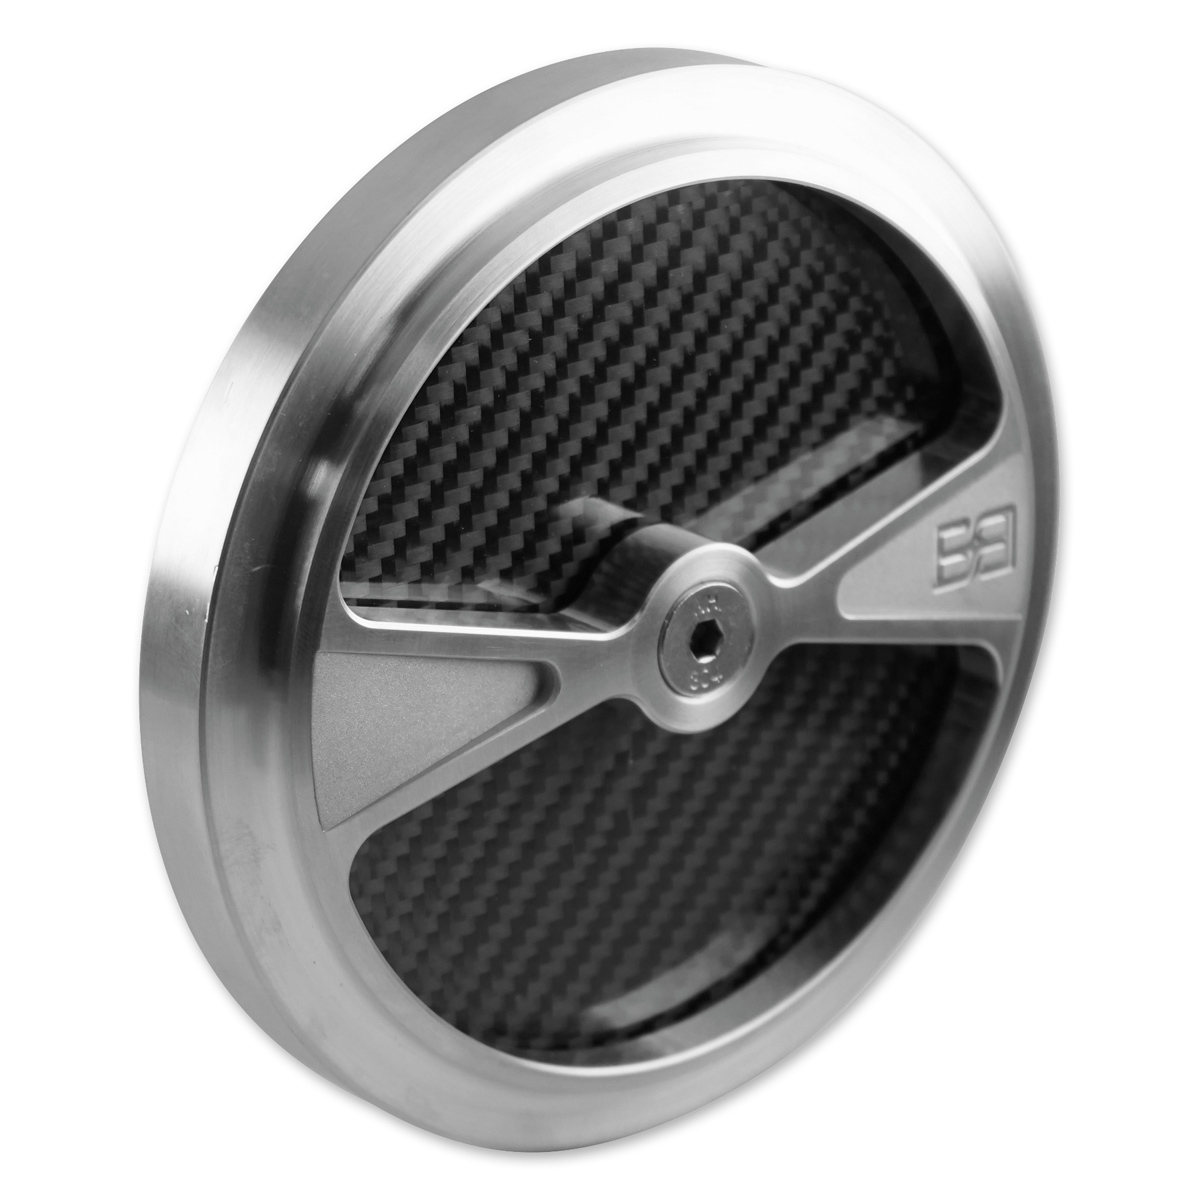 Brass Balls Cycles F1 Air Cleaner Cover for S&S Stealth Air Cleaners Natural